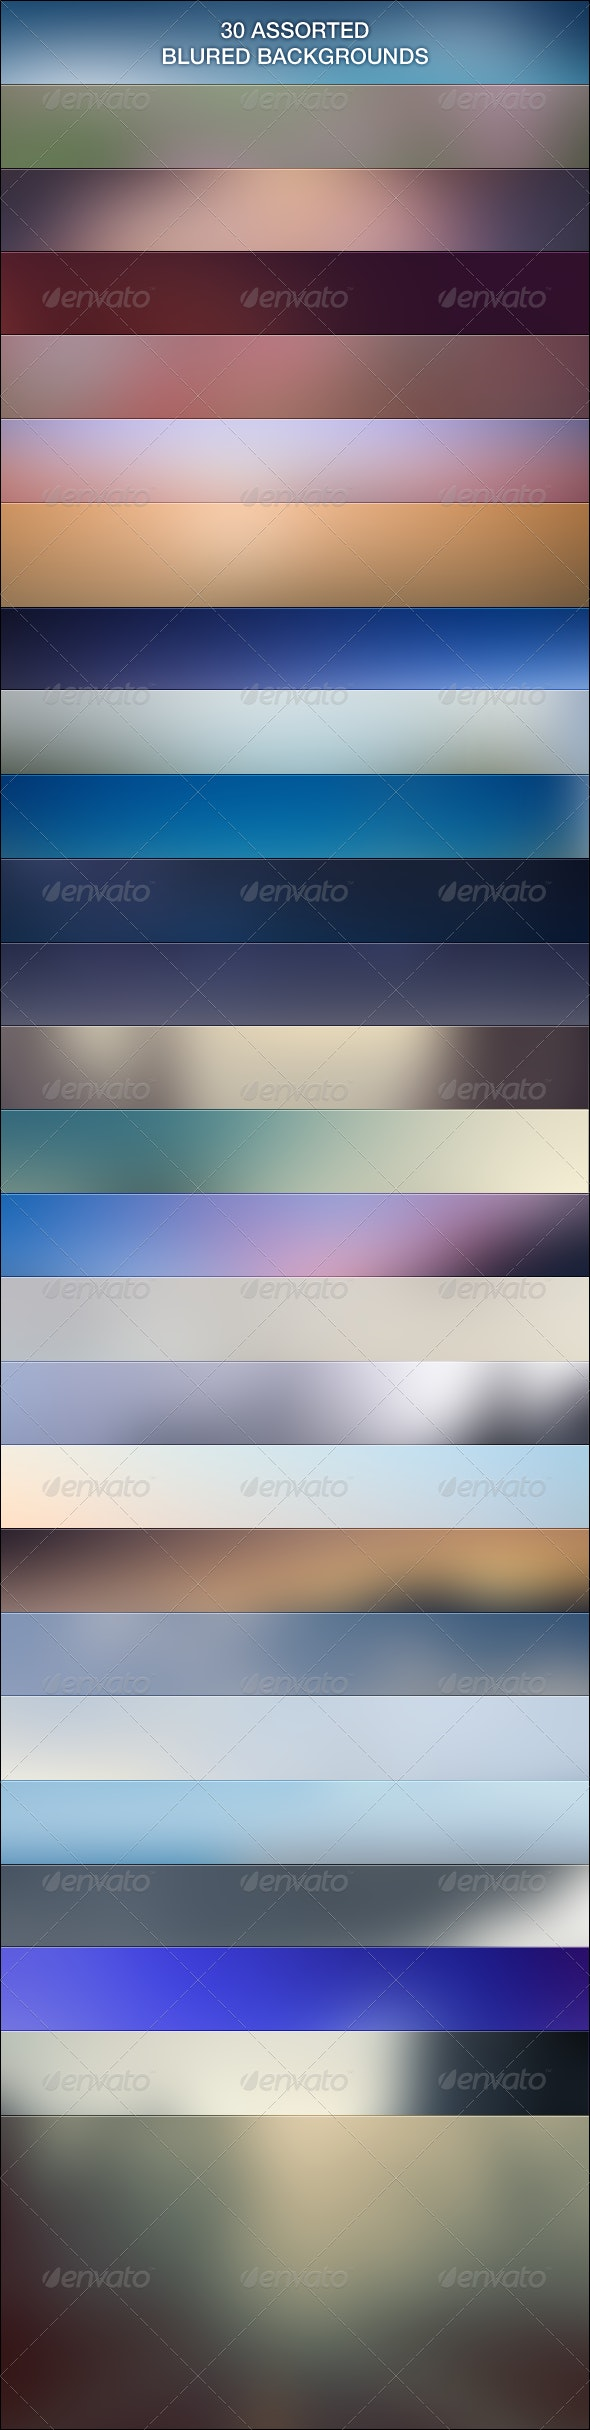 30 Assorted Blur Backgrounds - Abstract Backgrounds